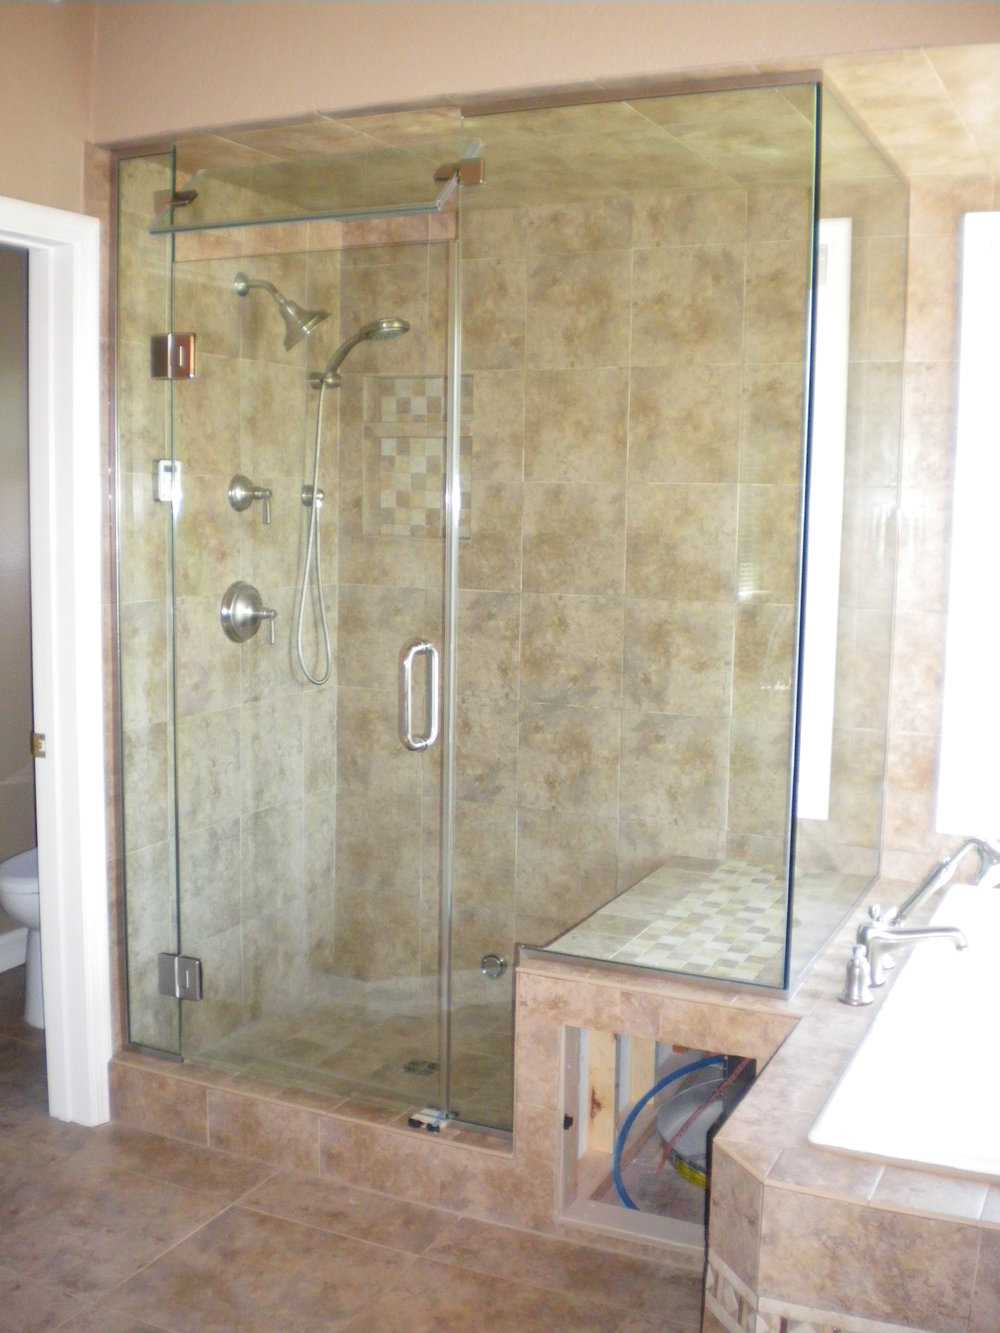 Shower-Doors-Residential-Photos-5.jpg